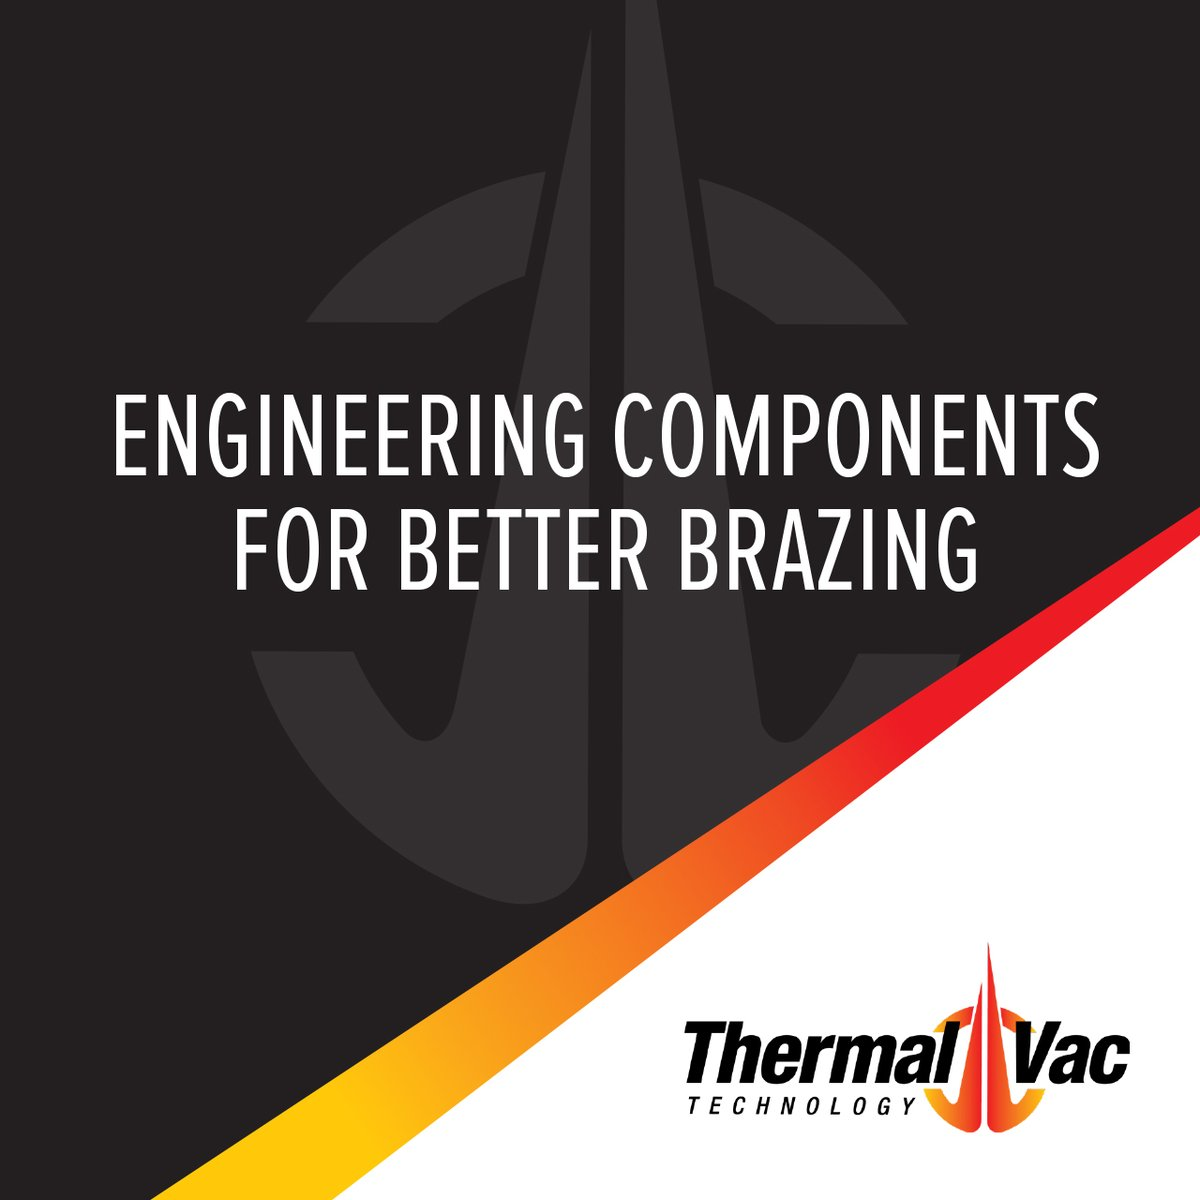 #Brazing can be studied at many different levels of granularity. How precise does it need to be? The answer depends. Even the most forgiving projects need components built to exacting standards. Learn more here: http://ow.ly/63Ri30qkpMe  #ThermalVac #aerospace #aerospaceengineering pic.twitter.com/dS4ssoaOI5